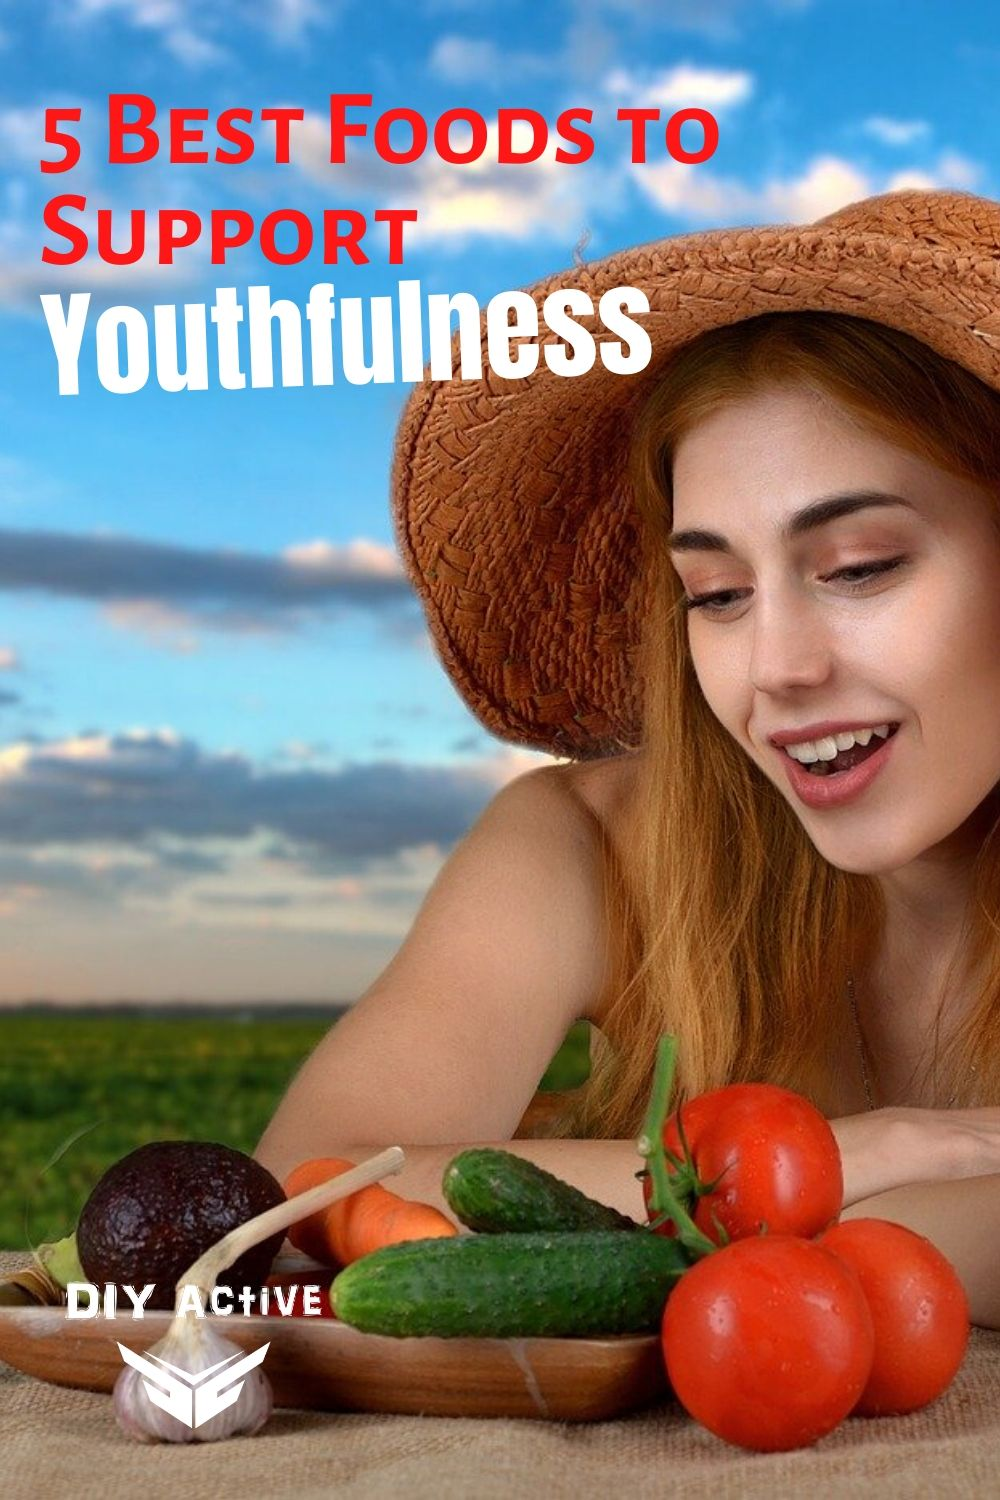 5 Best Foods to Support Youthfulness and Beauty